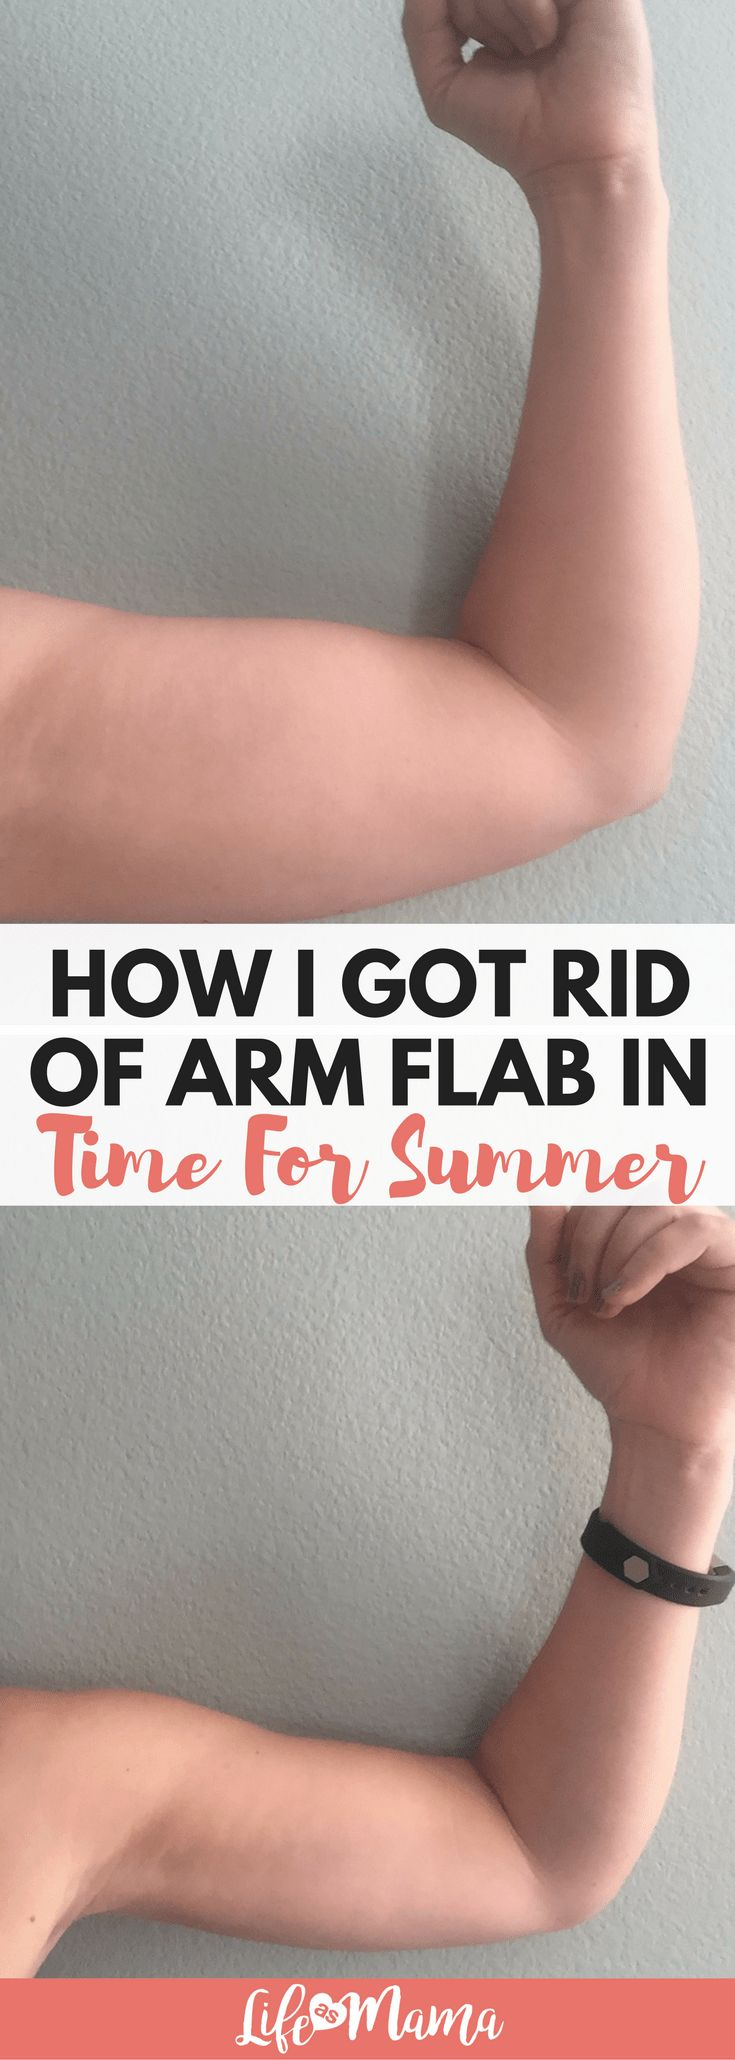 Get rid of arm flab